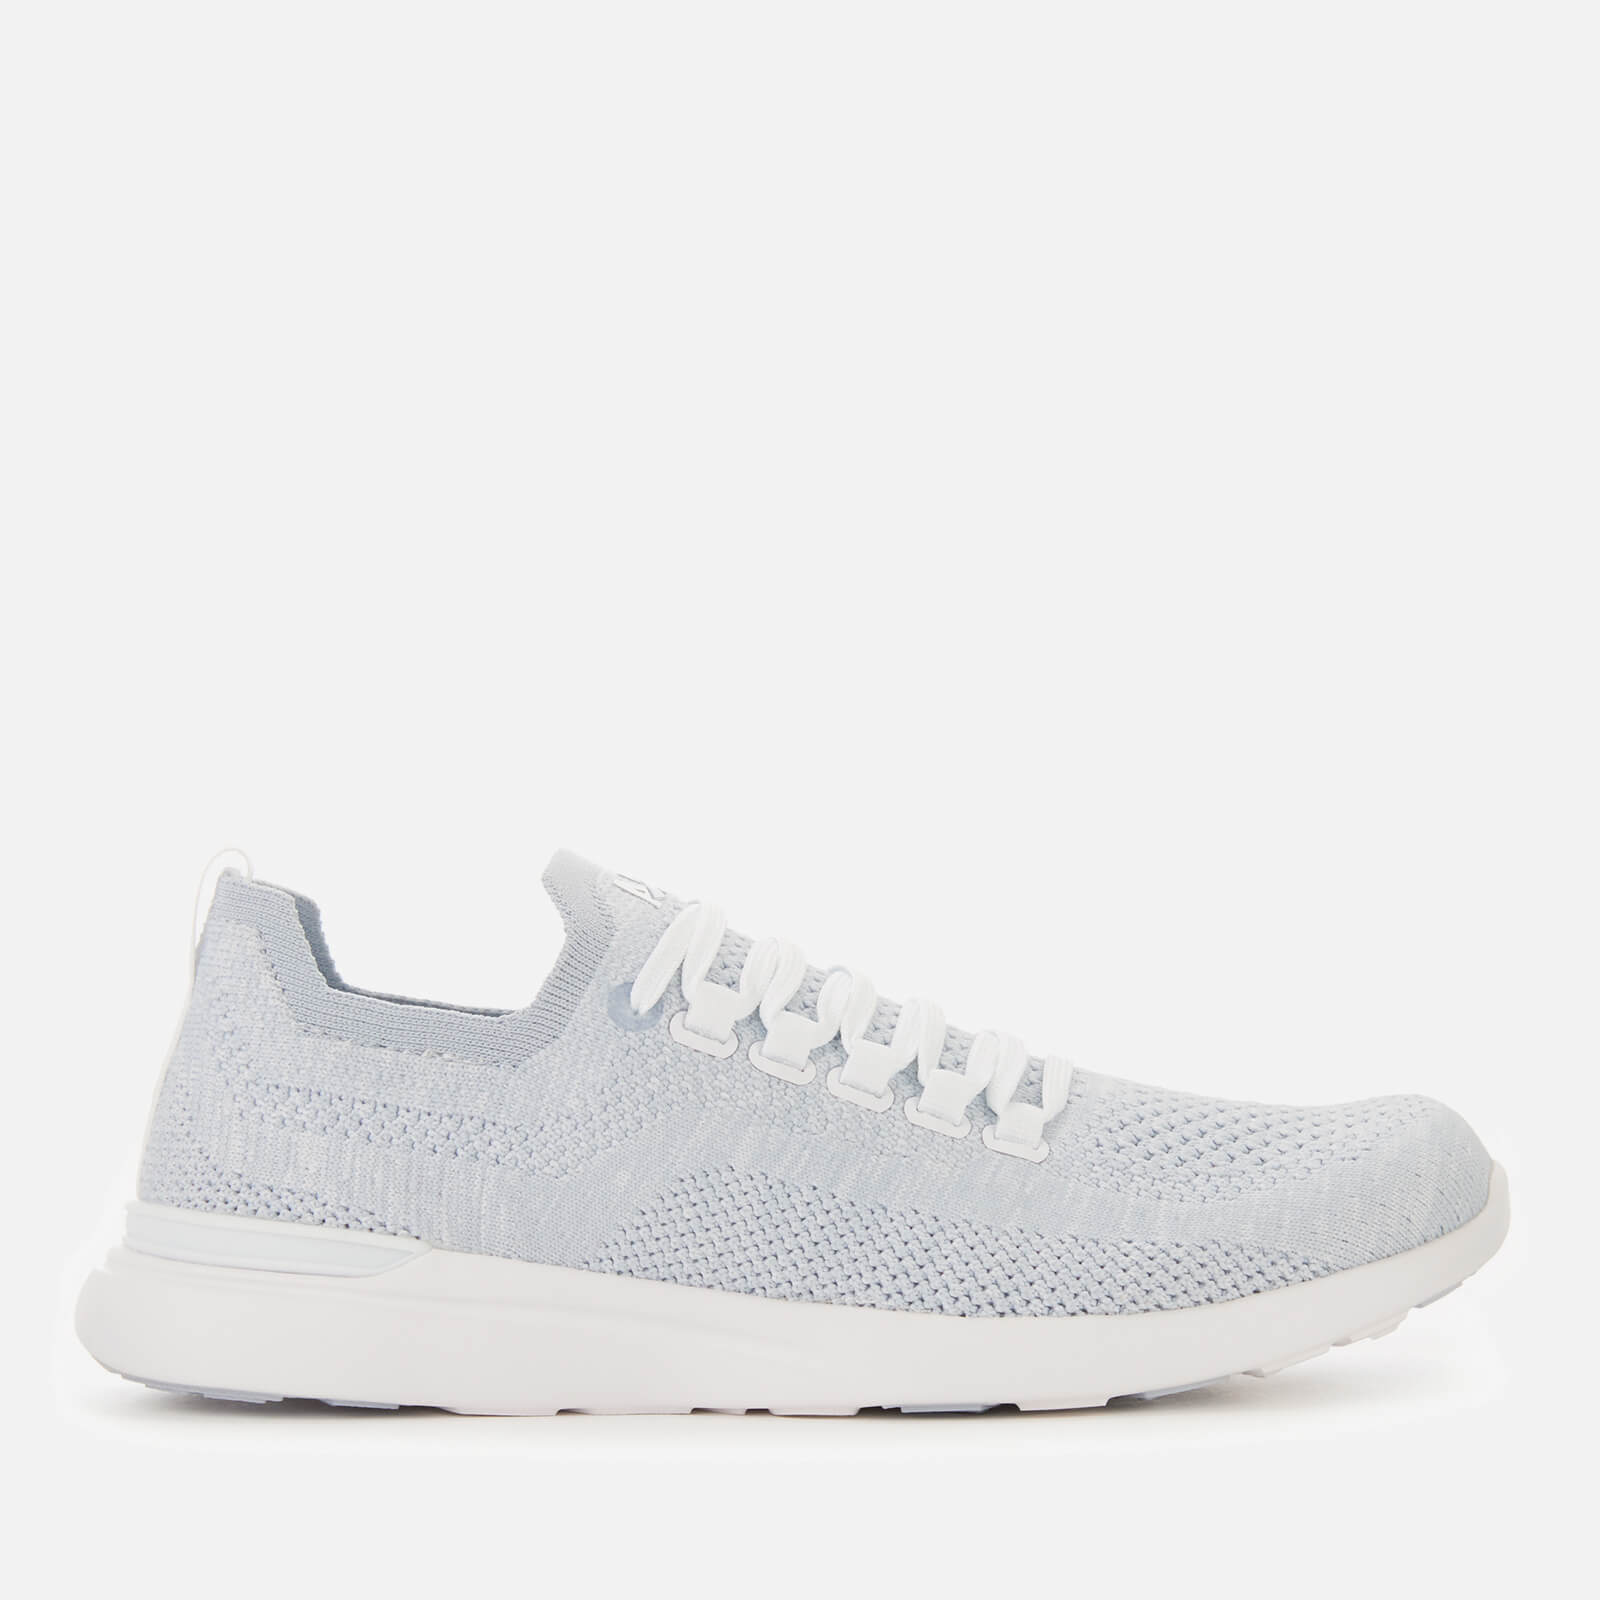 2f7a59afac53 Athletic Propulsion Labs Women's TechLoom Breeze Trainers - White/Steel  Grey - Free UK Delivery over £50